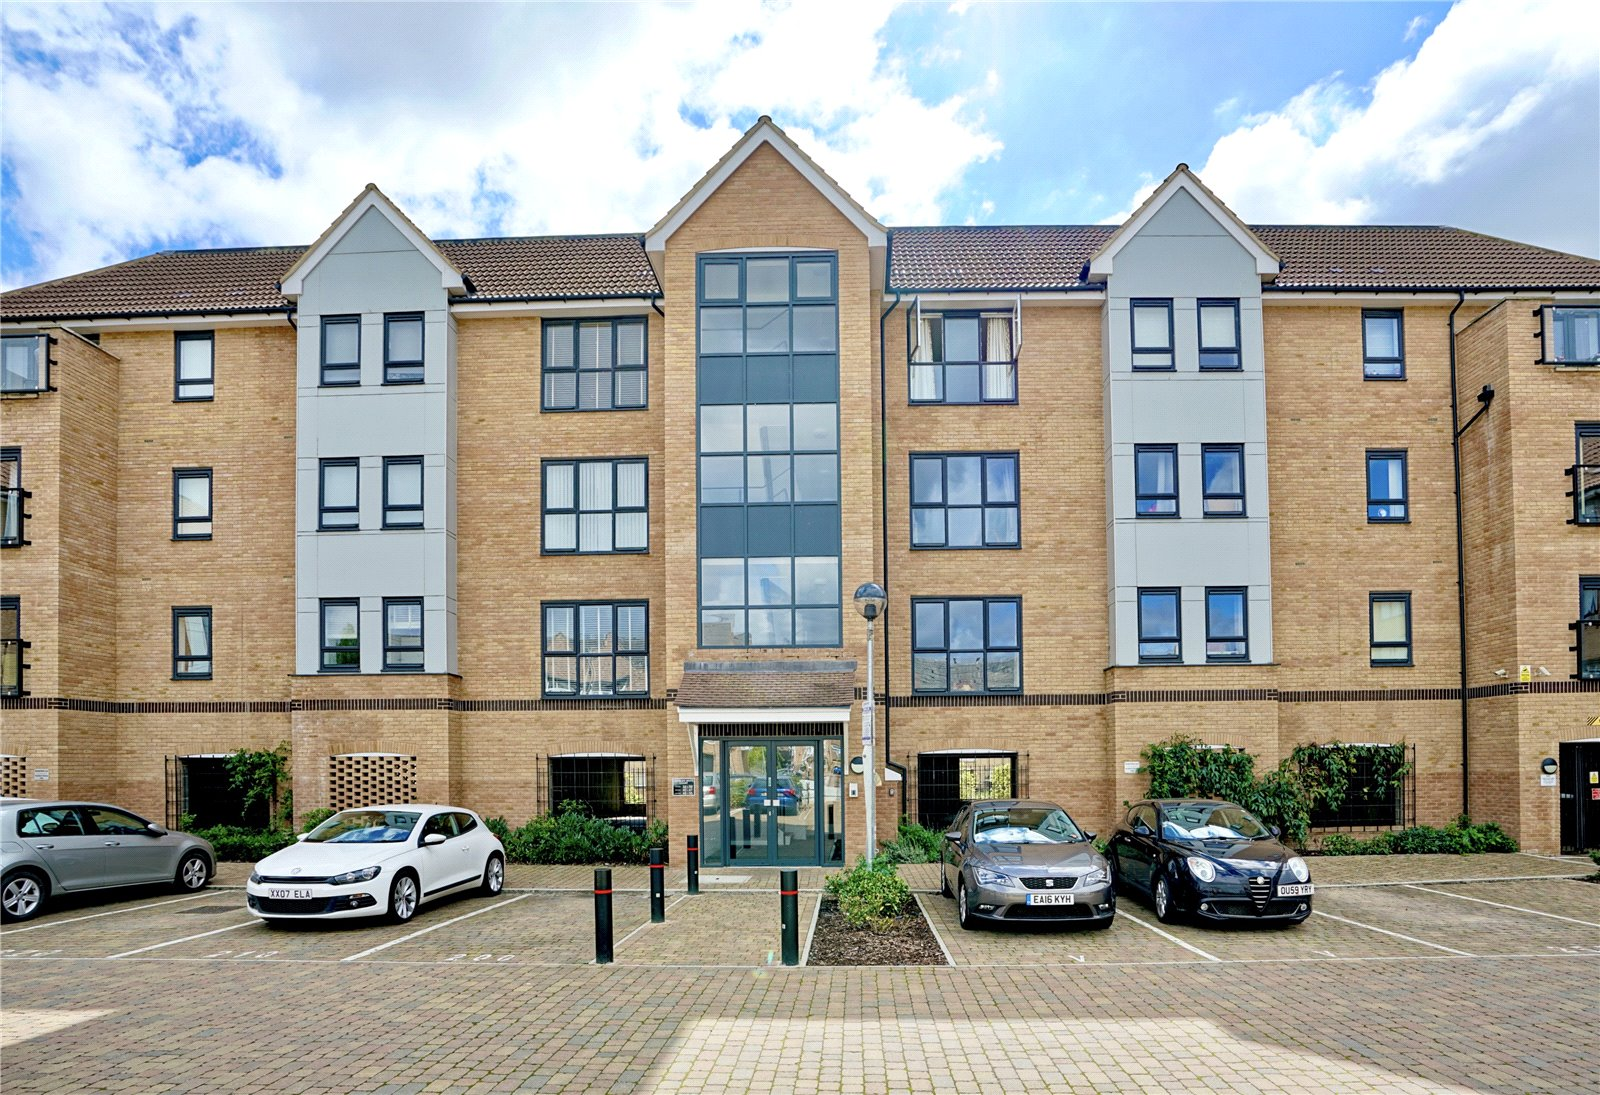 2 bed apartment for sale in Little Paxton, PE19 6SJ, PE19